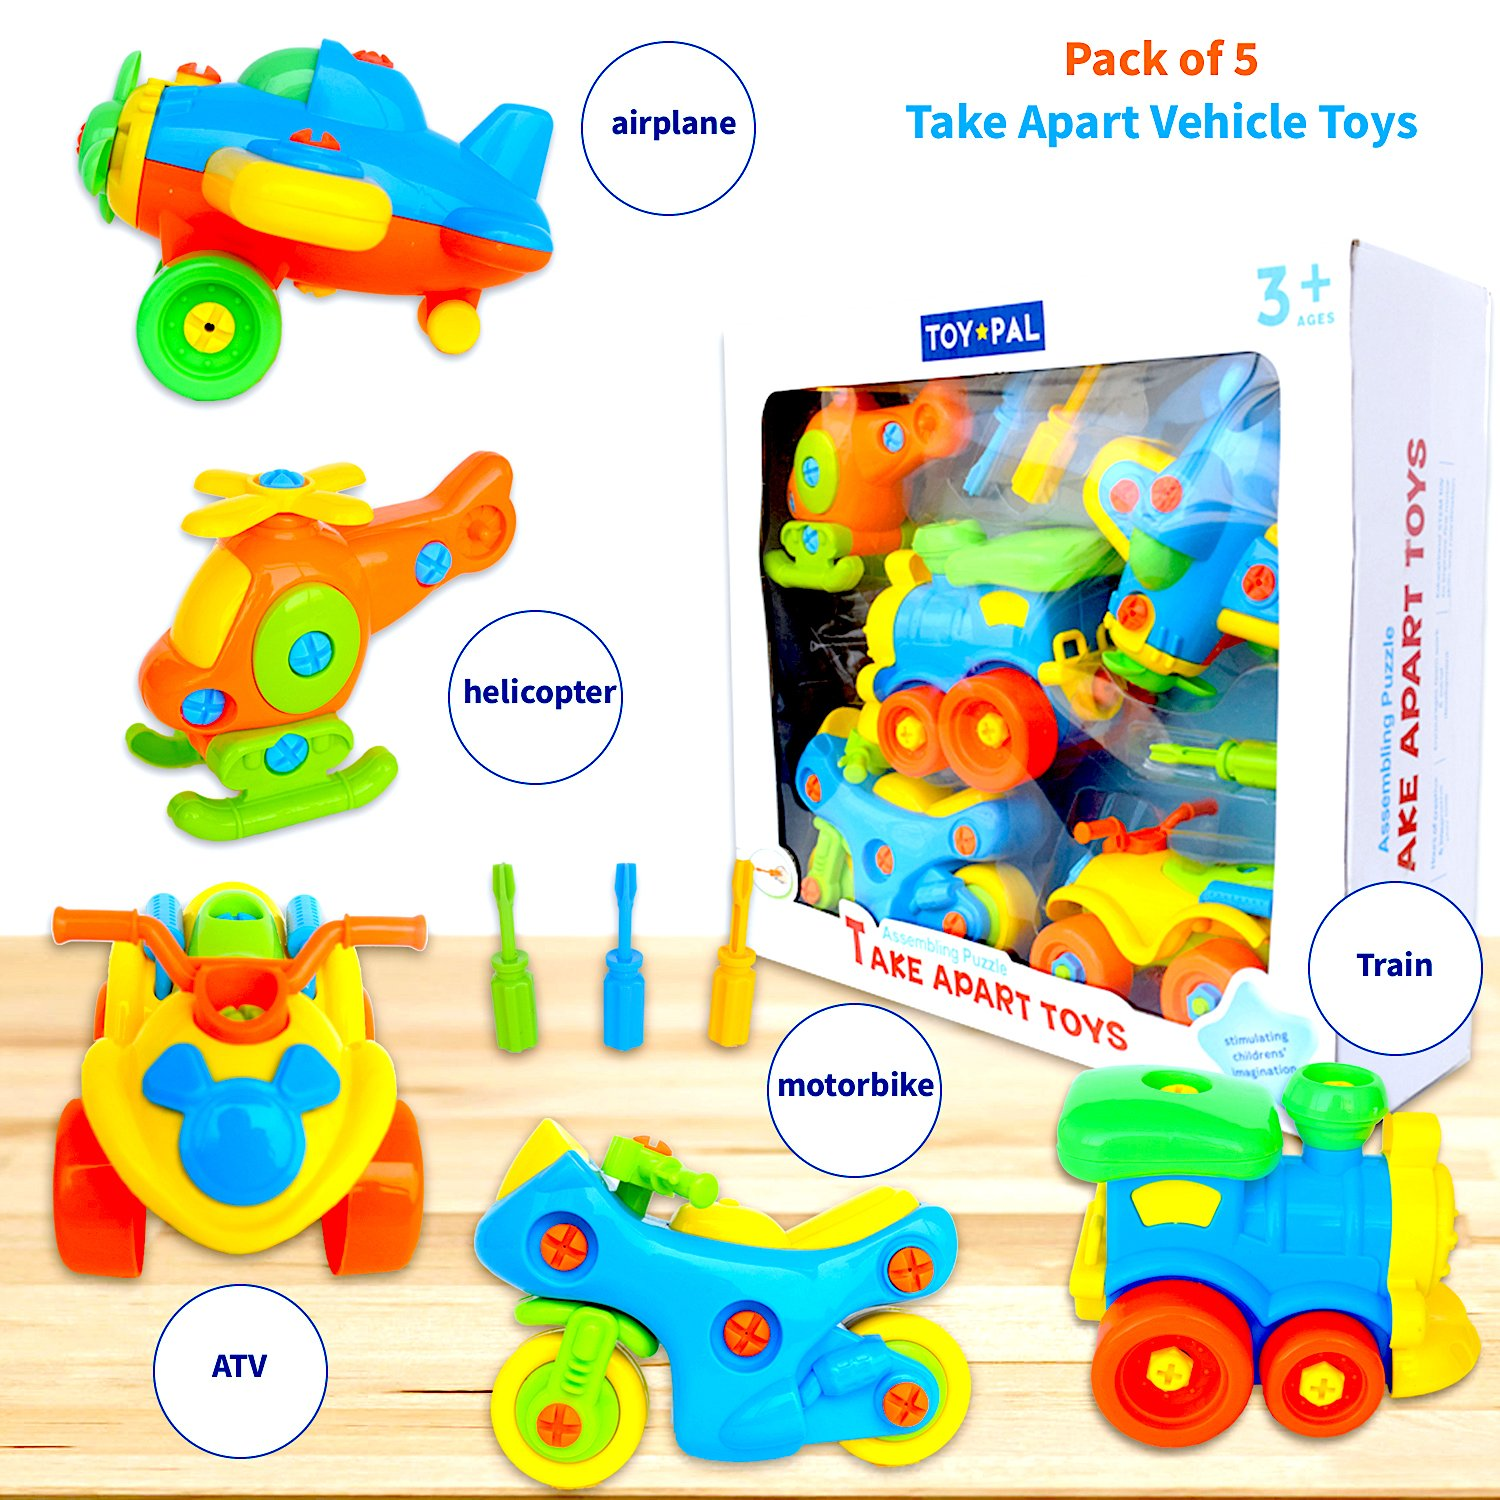 Take Apart Toys (pack of 5), STEM Learning Vehicles Play Set, Builds Problem Solving and Fine Motor Skills For Boys Girls Toddlers Age 3 4 5 6 Years Old | Gift Idea For Engineering, Building Toys Nimble Minds